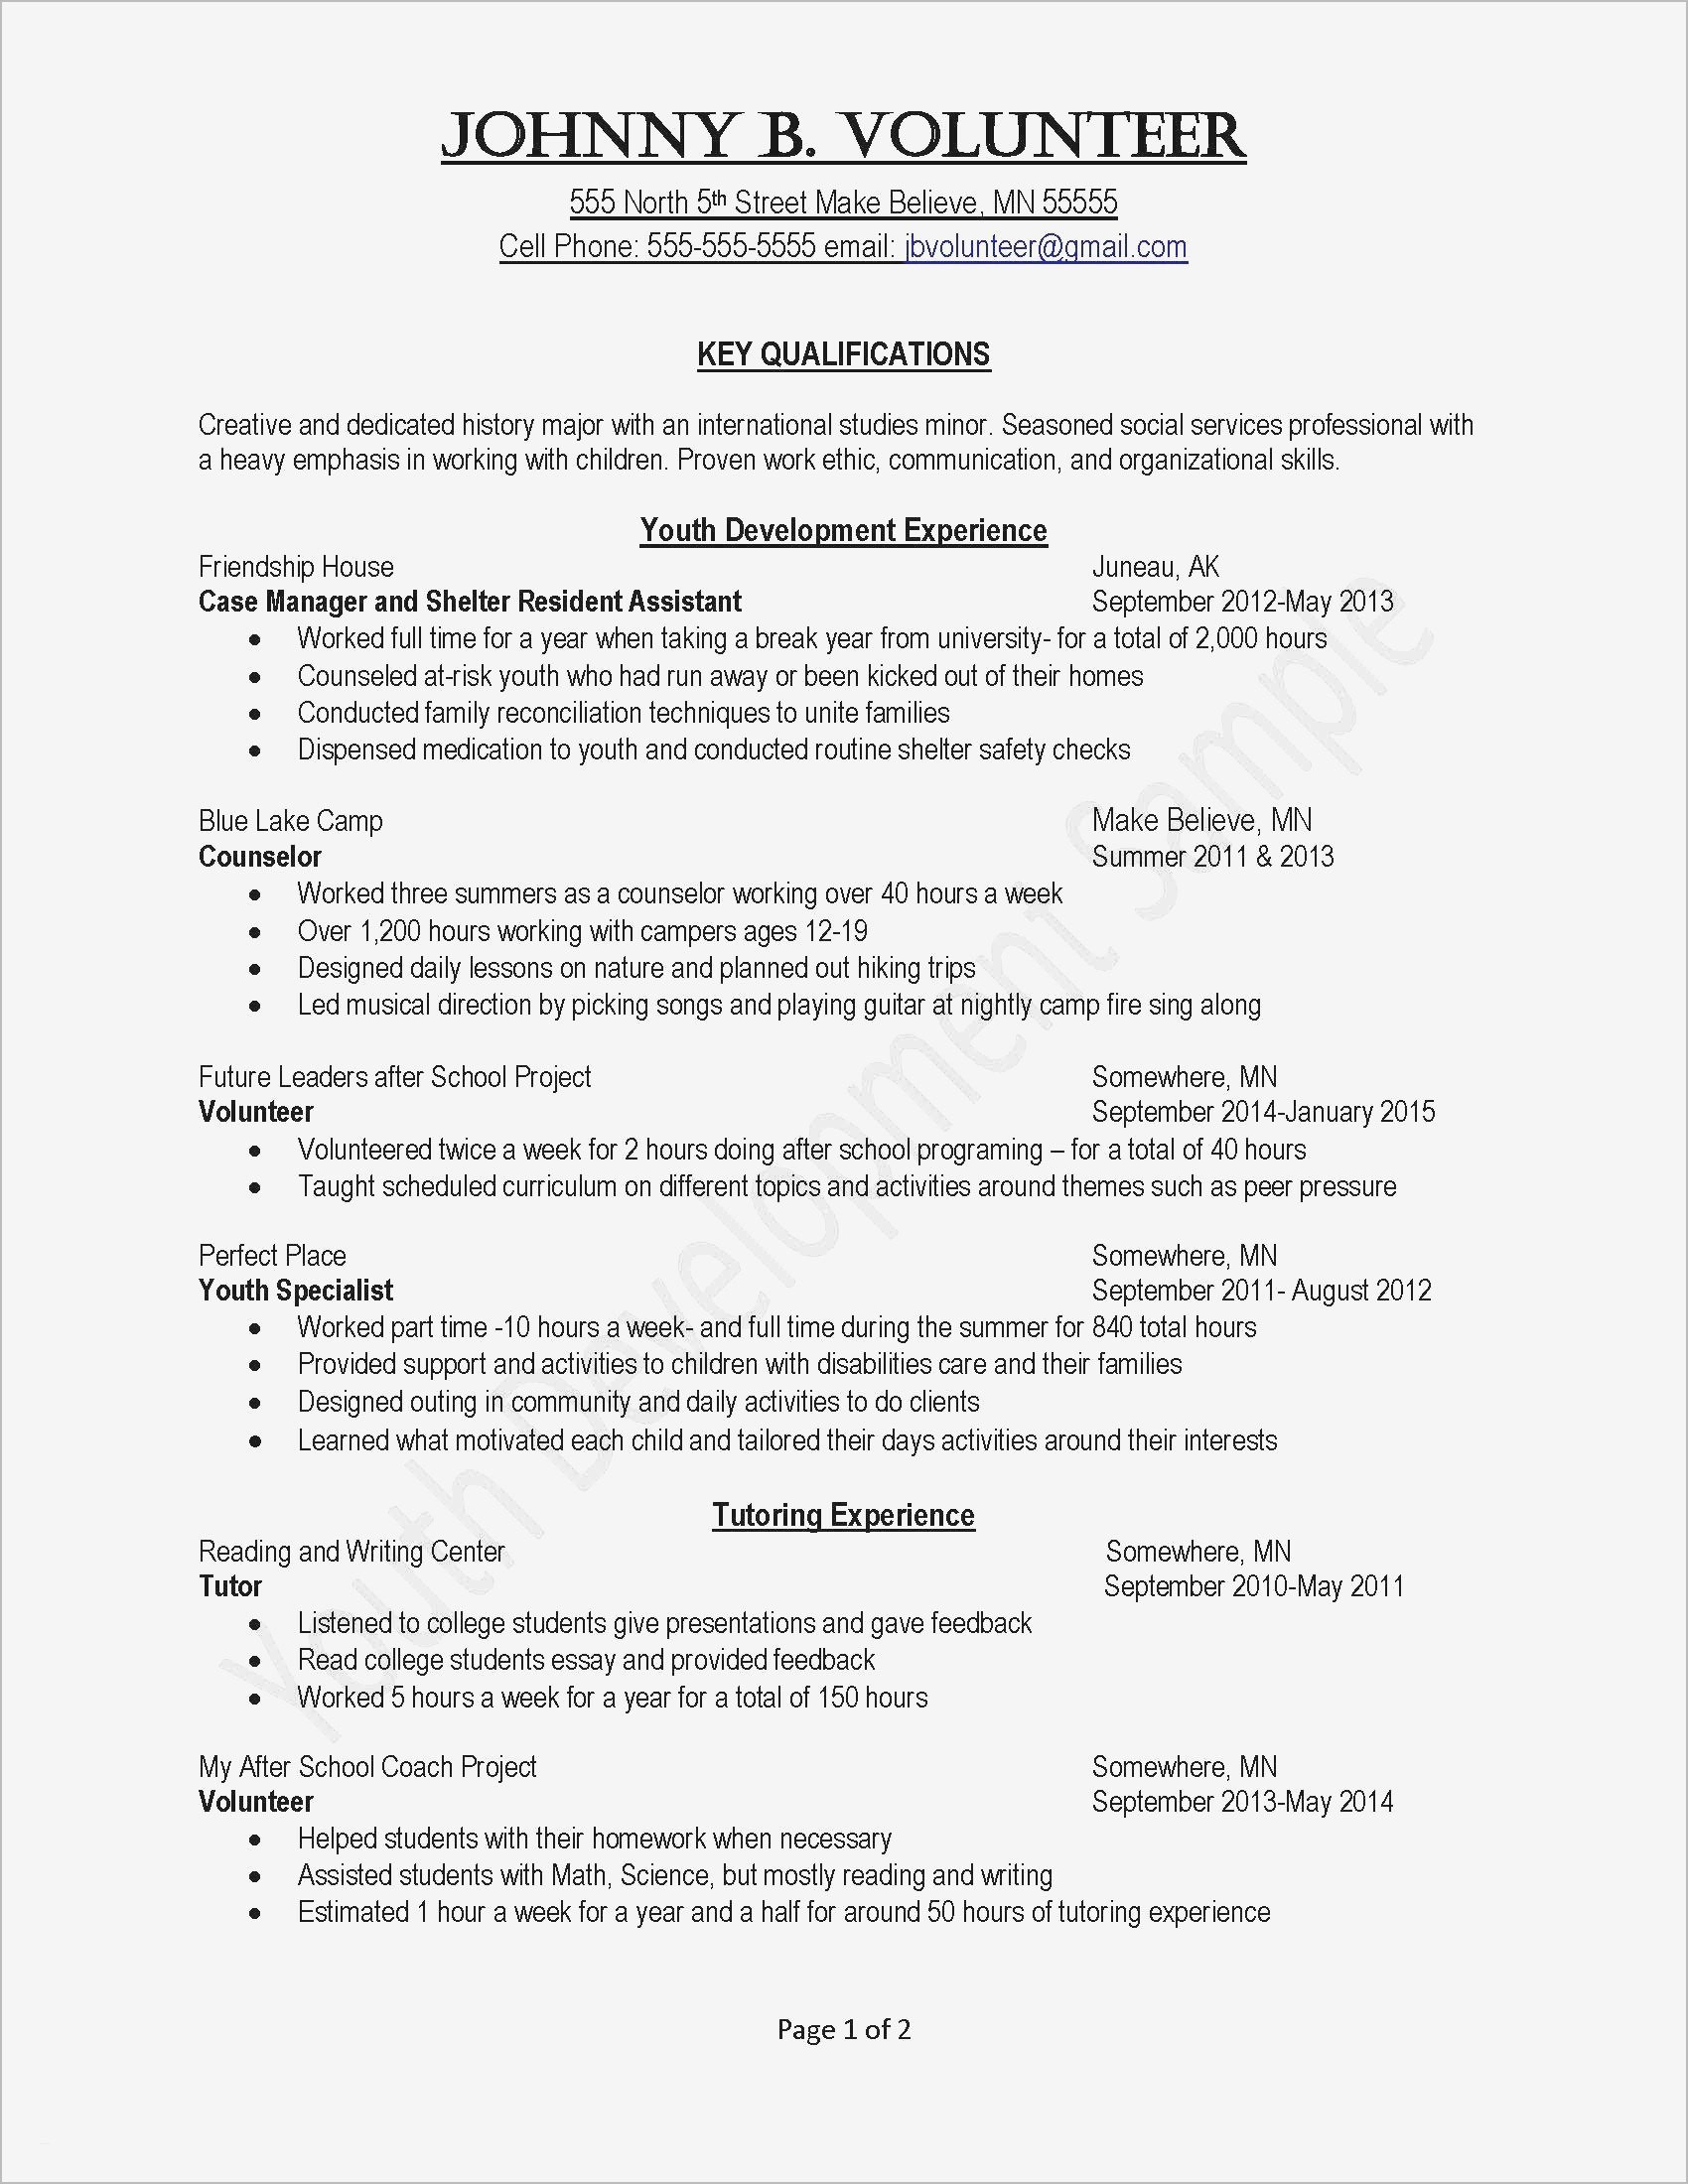 Modern Resume and Cover Letter Template - Unique Cover Letter for Resume Template Free